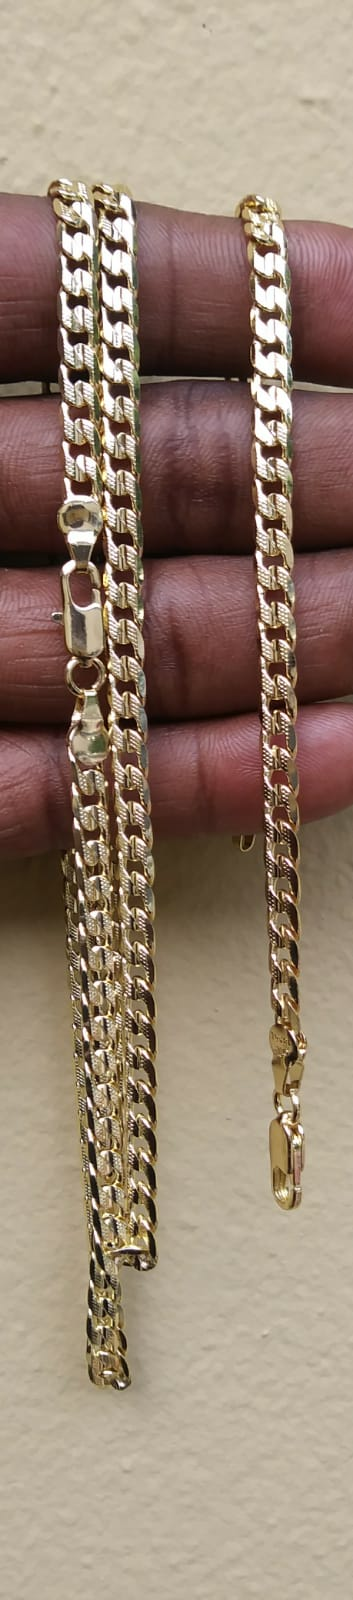 18k 5mm Gold filled Diamond Cut Cuban link Chain And Bracelet